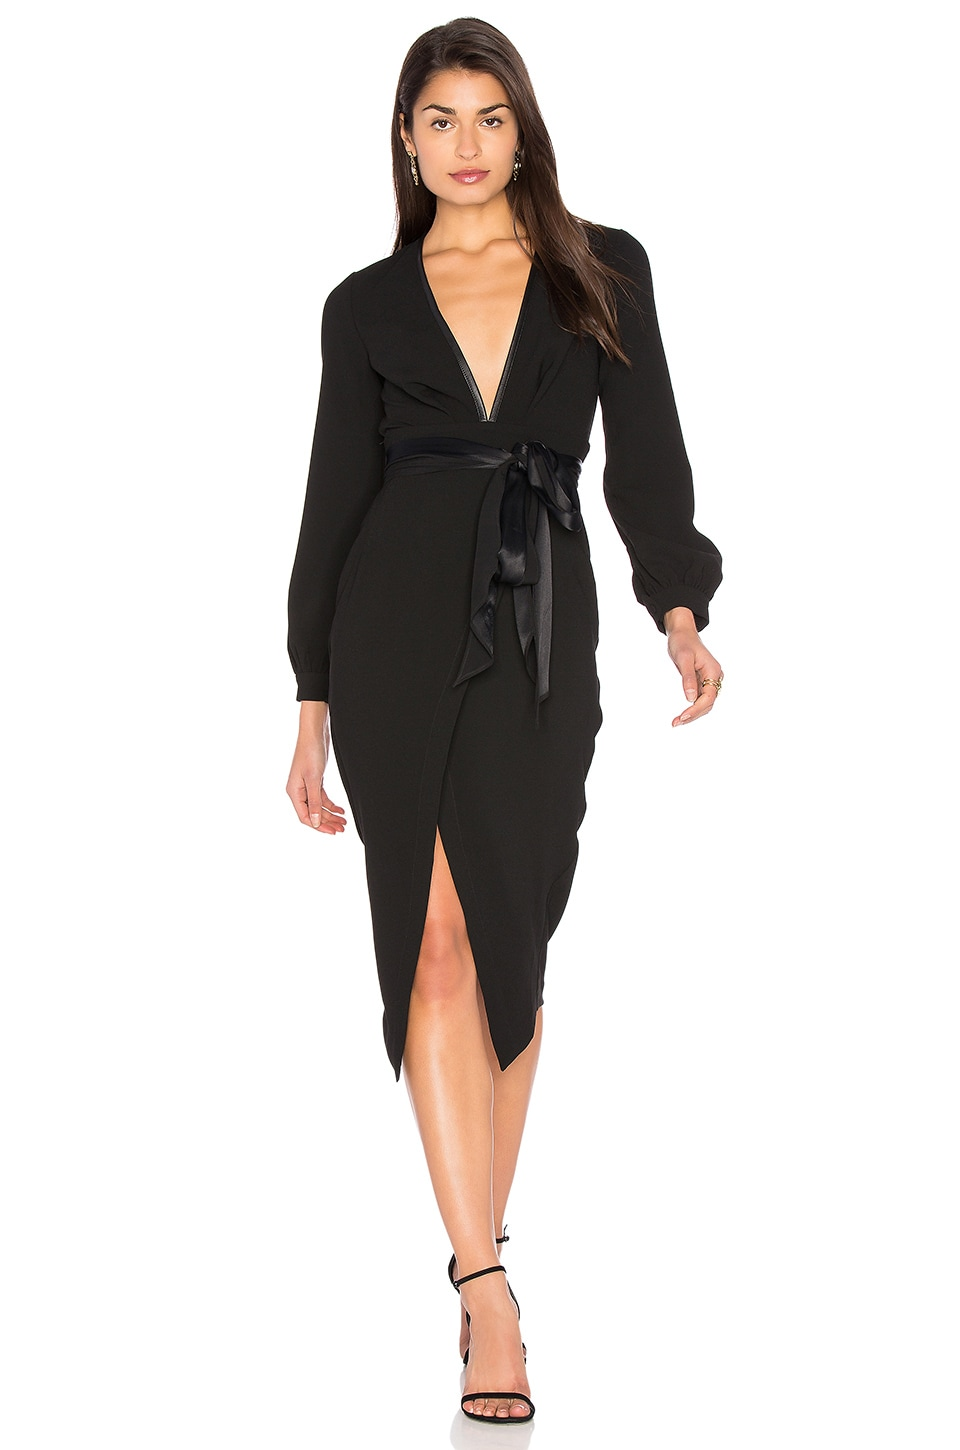 Roosevelt Long Sleeve Midi Dress